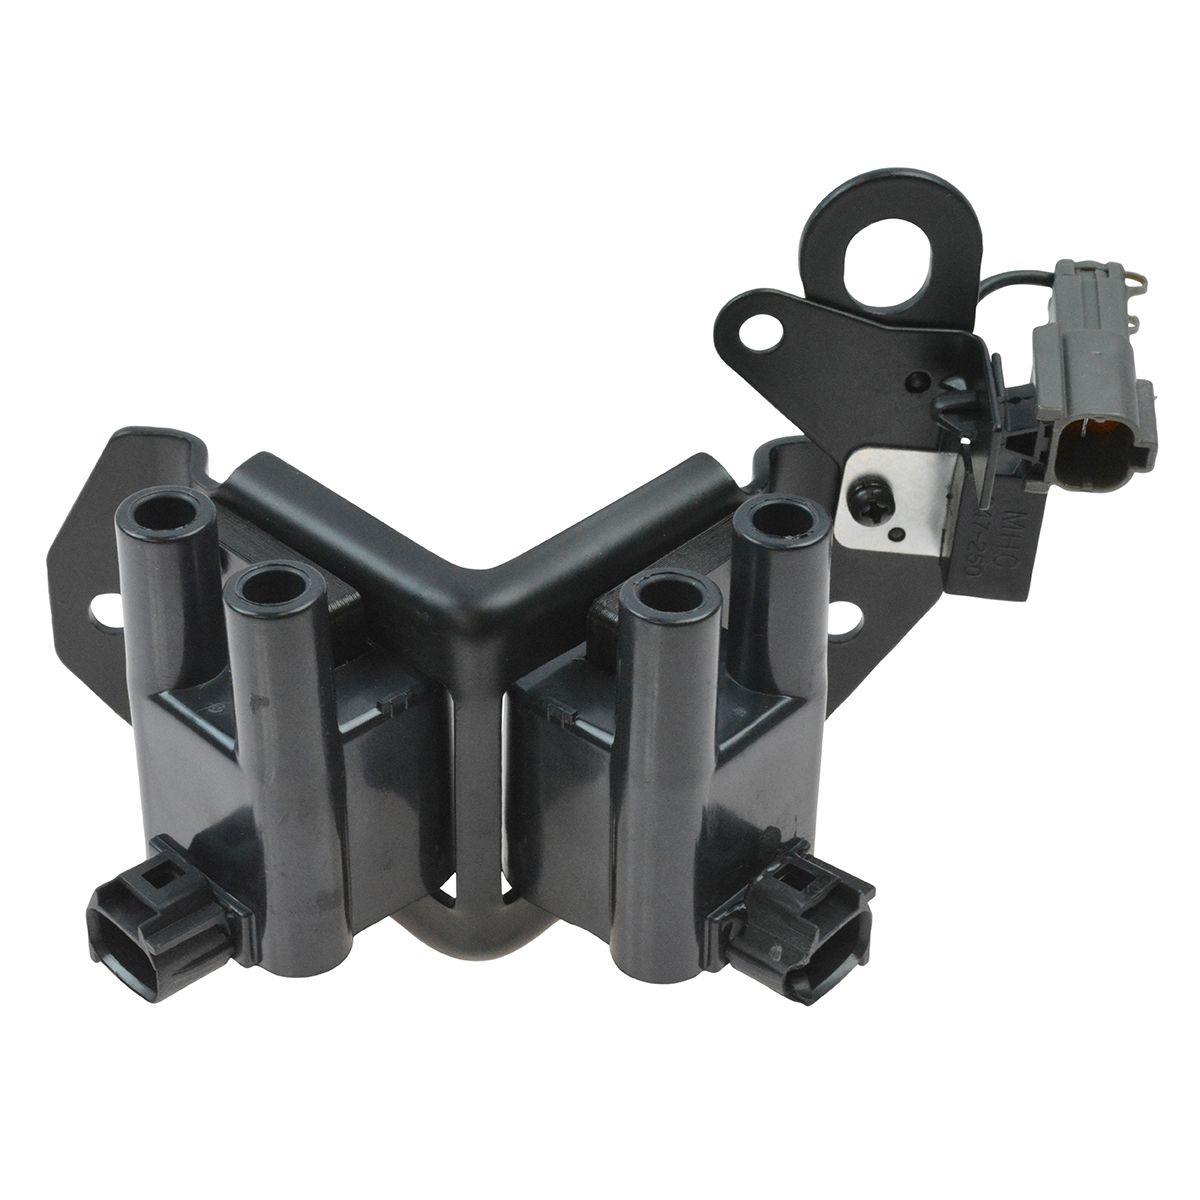 Details About Ignition Coil Pack For 00 05 Hyundai Accent 1 5l Sohc